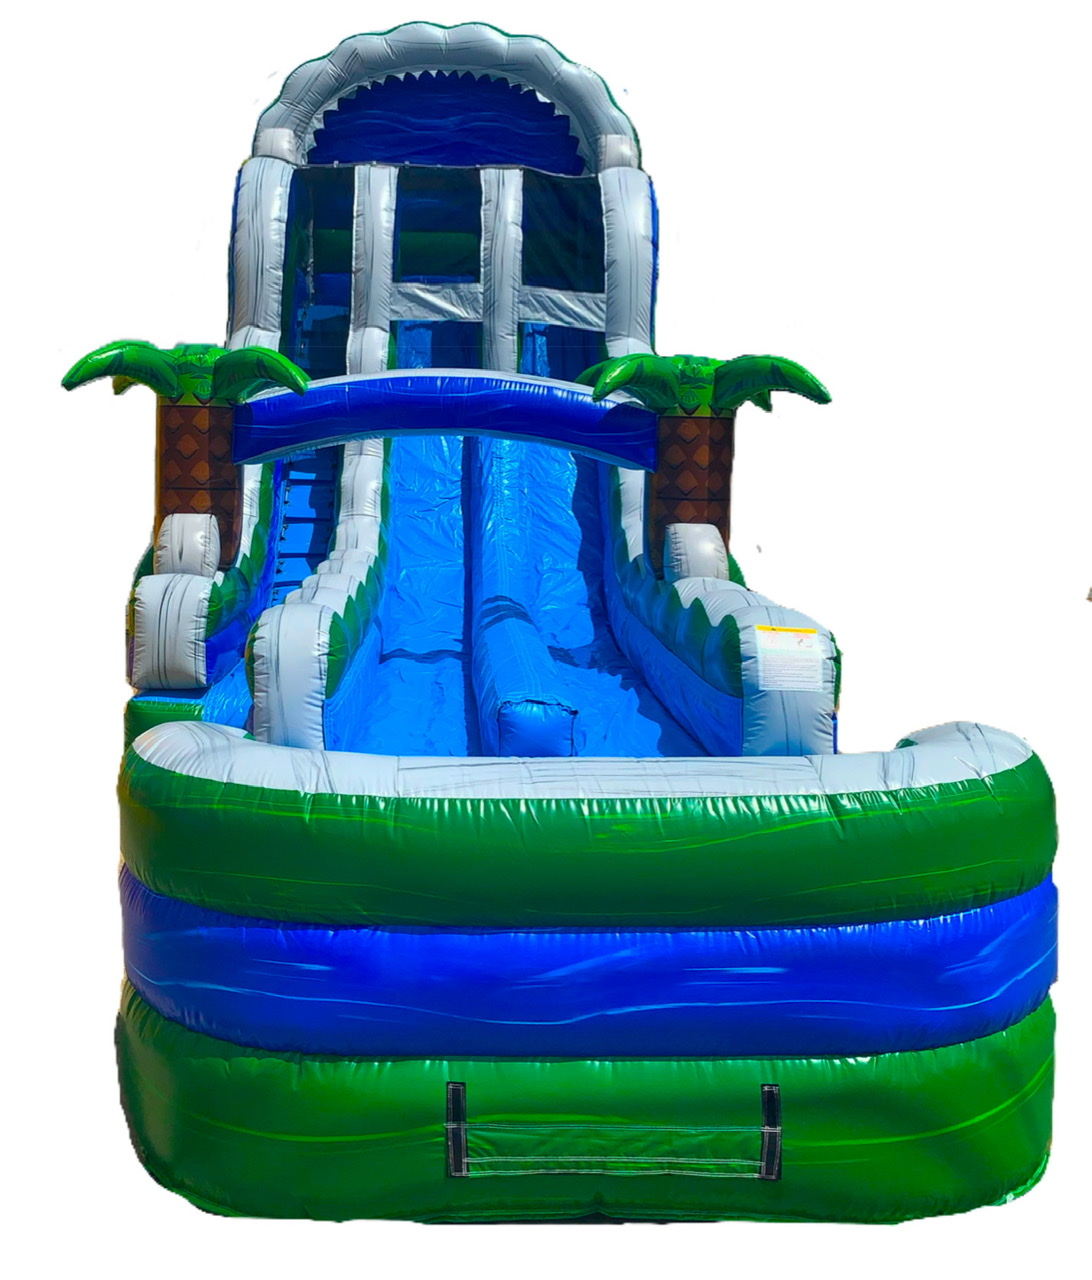 19ft Dual Lane Tropic Thunder Waterslide